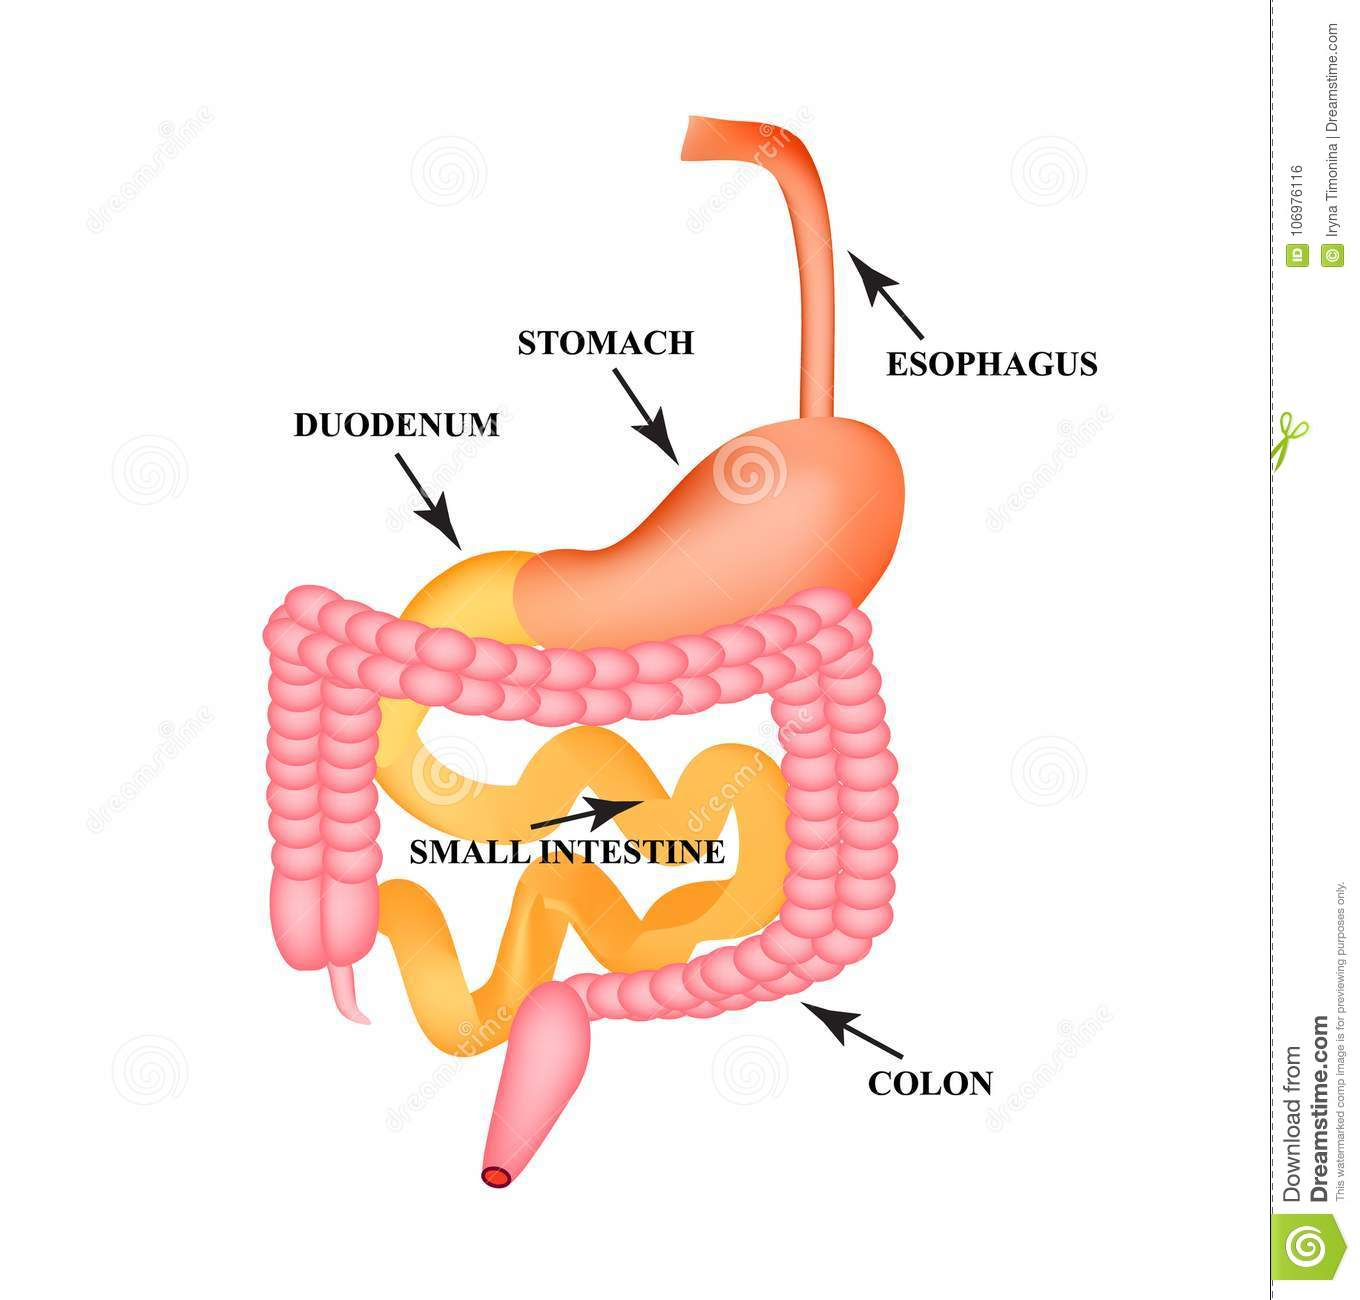 Organs of the gastrointestinal tract. Esophagus, stomach, duodenum, small intestine, colon. Digestion. Infographics. Vector